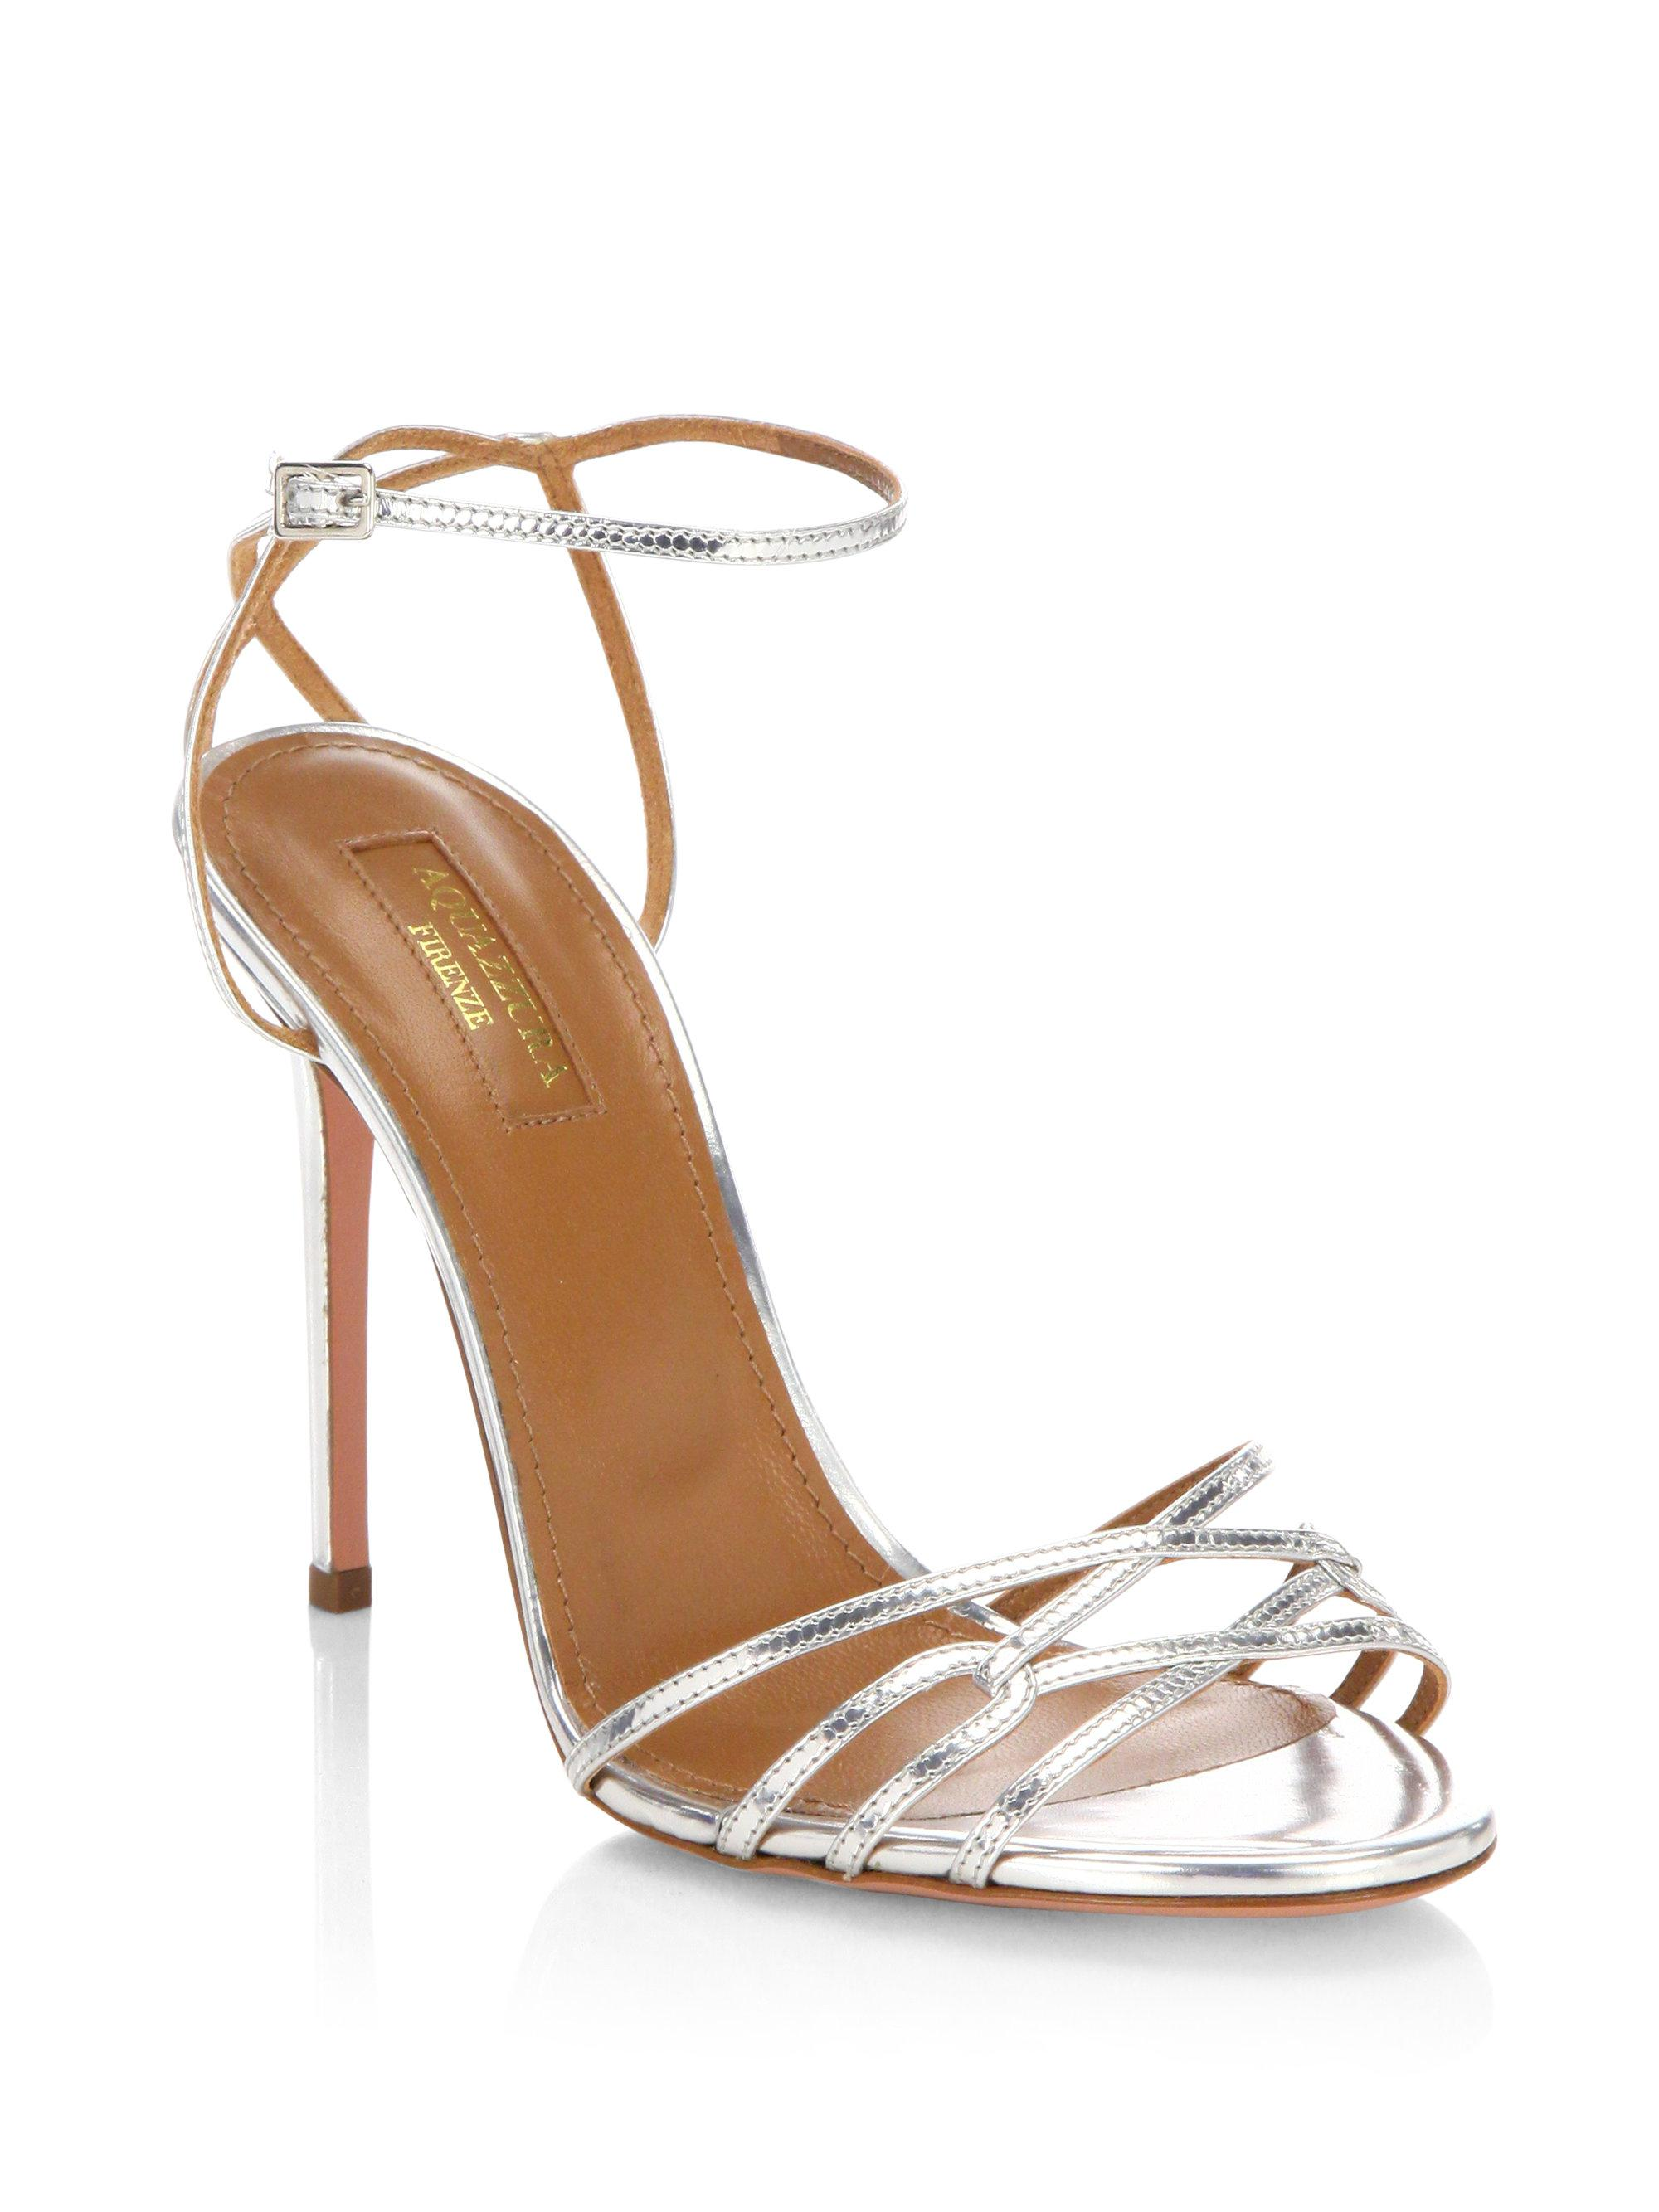 Aquazzura Leather T-Strap Pumps the cheapest sale online PbJuEJ